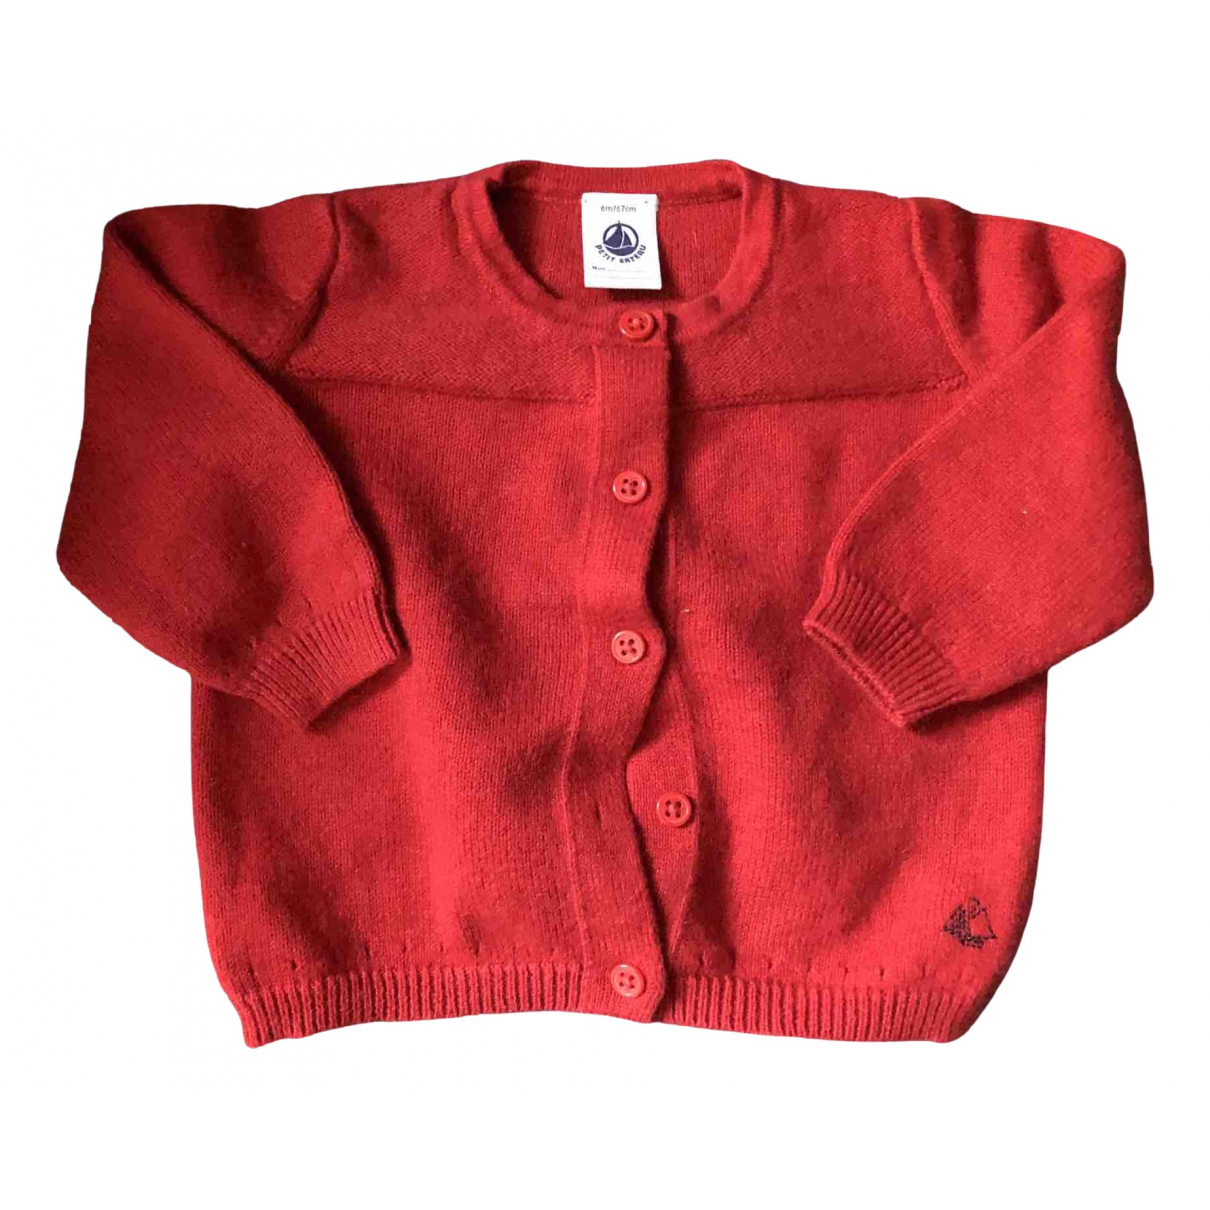 Petit Bateau N Red Cotton Knitwear for Kids 6 months - up to 67cm FR